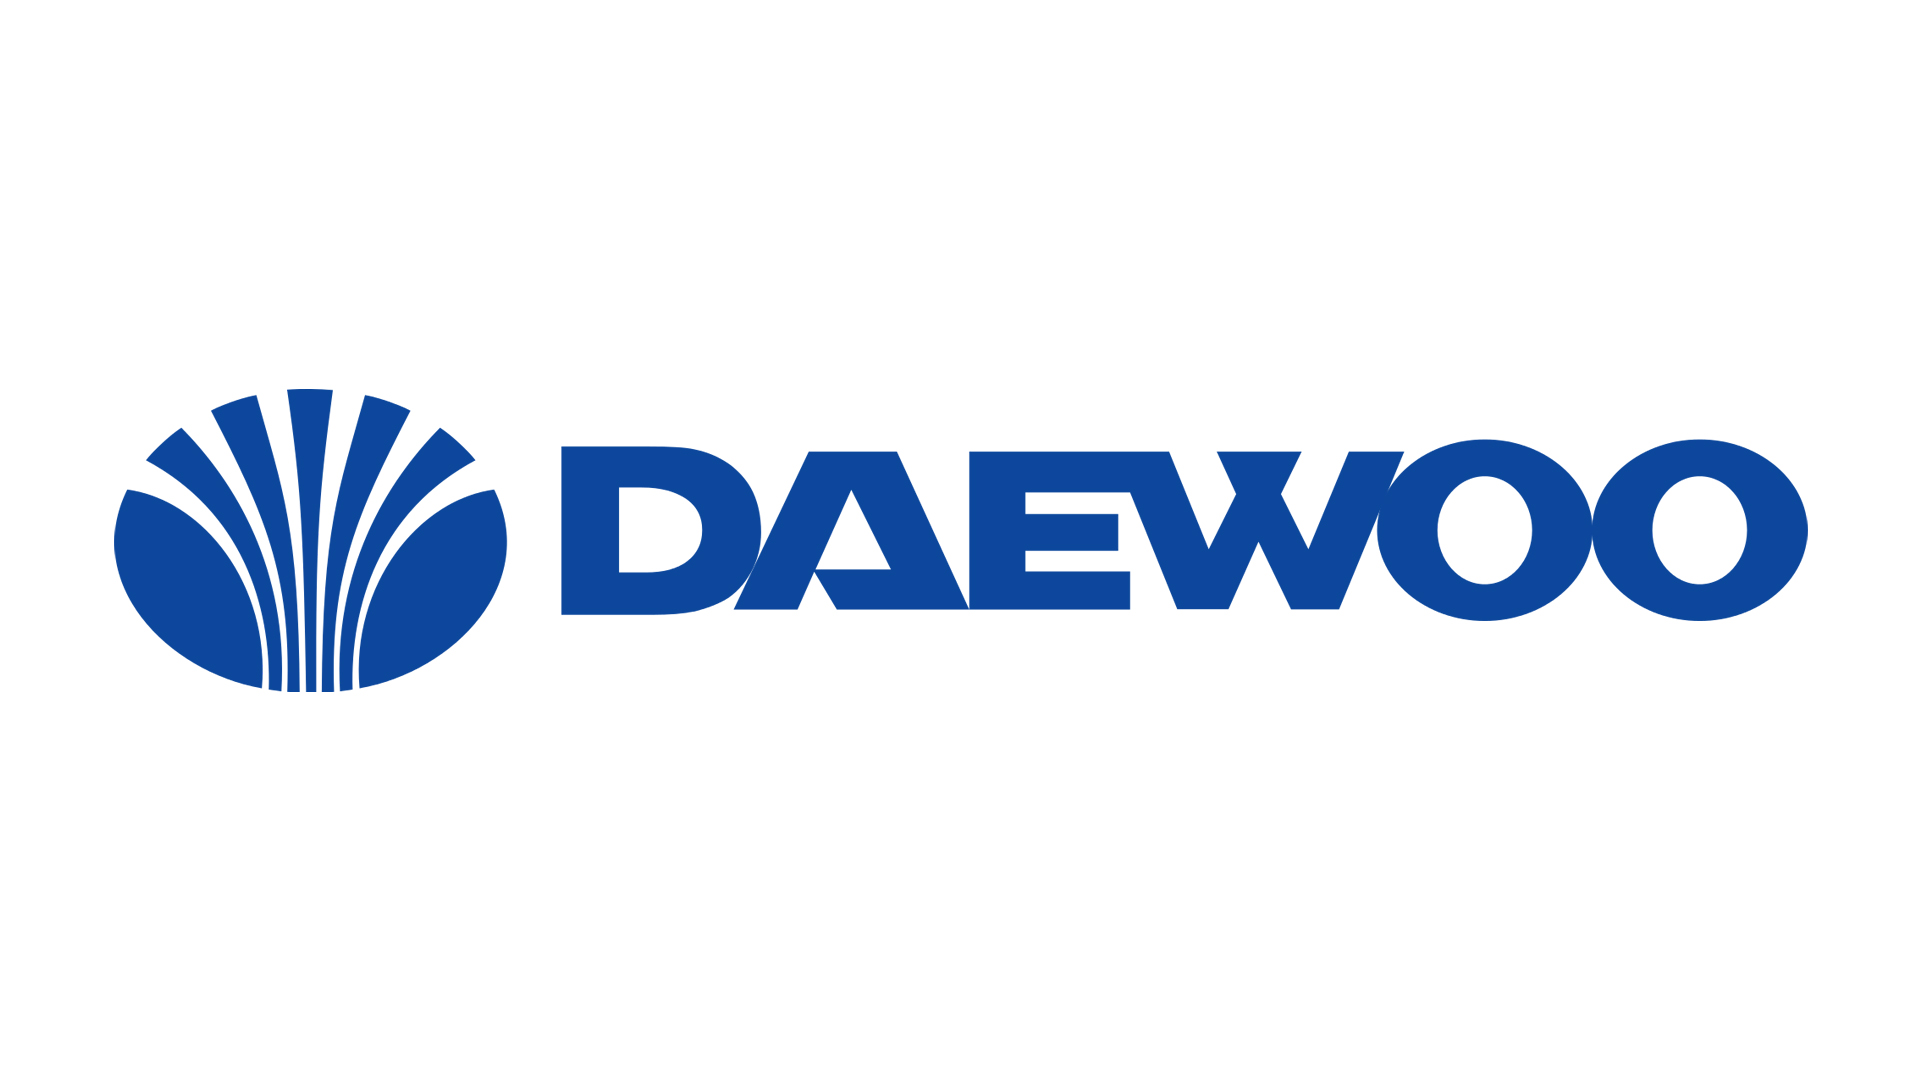 Daewoo Logo Meaning and History, latest models | World Cars nds